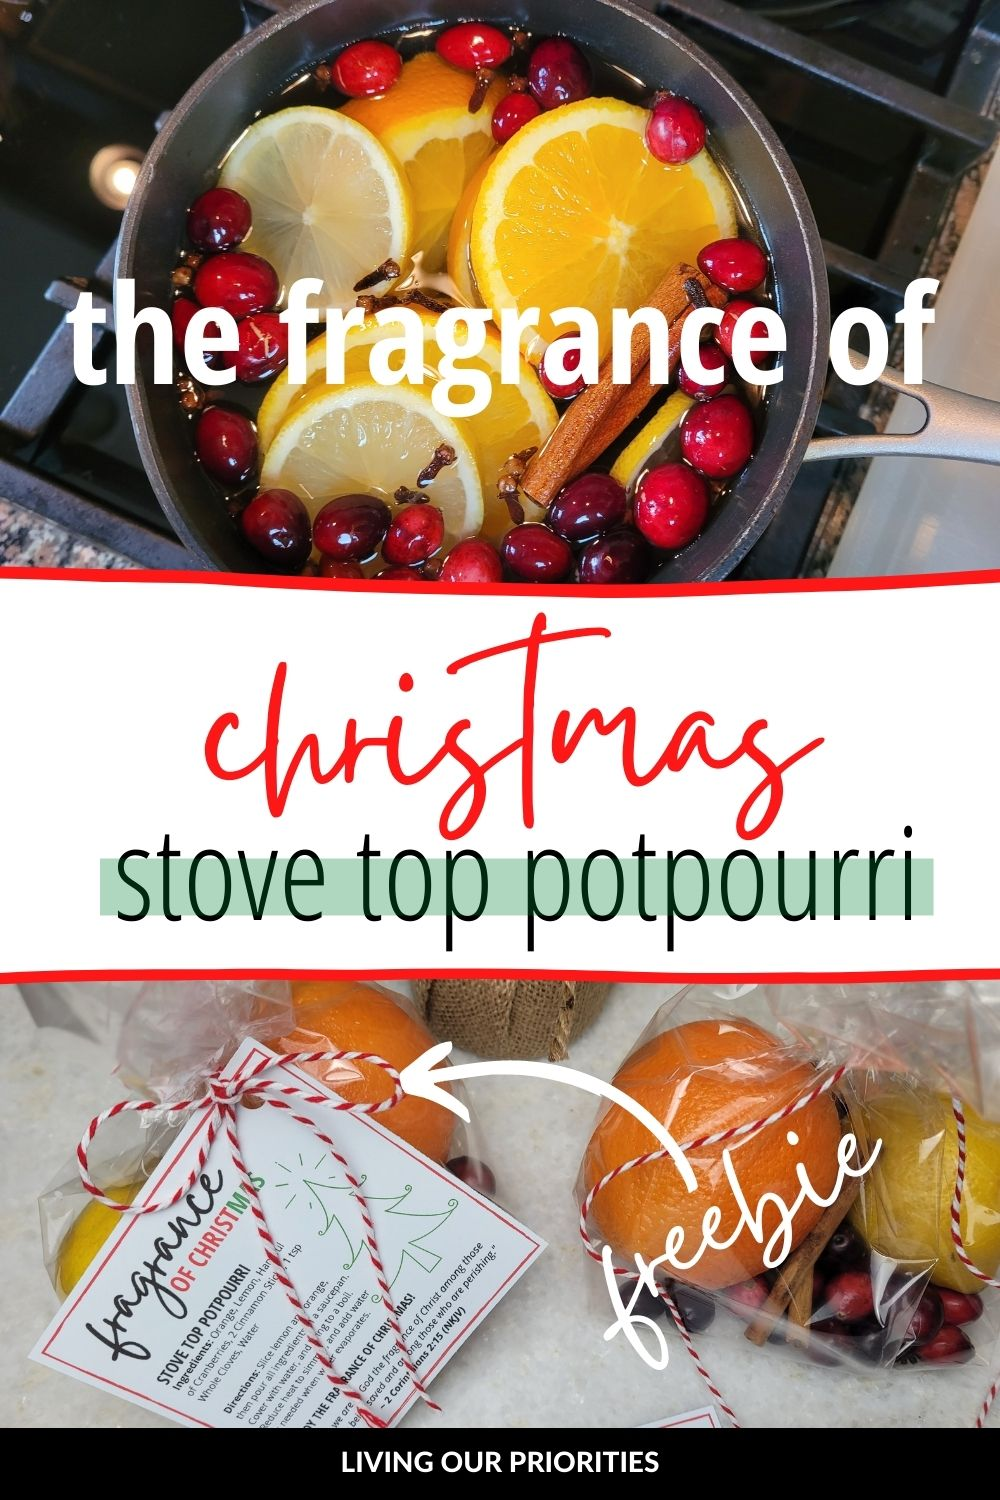 Christmas is the perfect time to simmer this stove top potpourri to remind us of the season and that we are the fragrance of Christ. #stovetoppotpourri #livingourpriorities #freeprintable